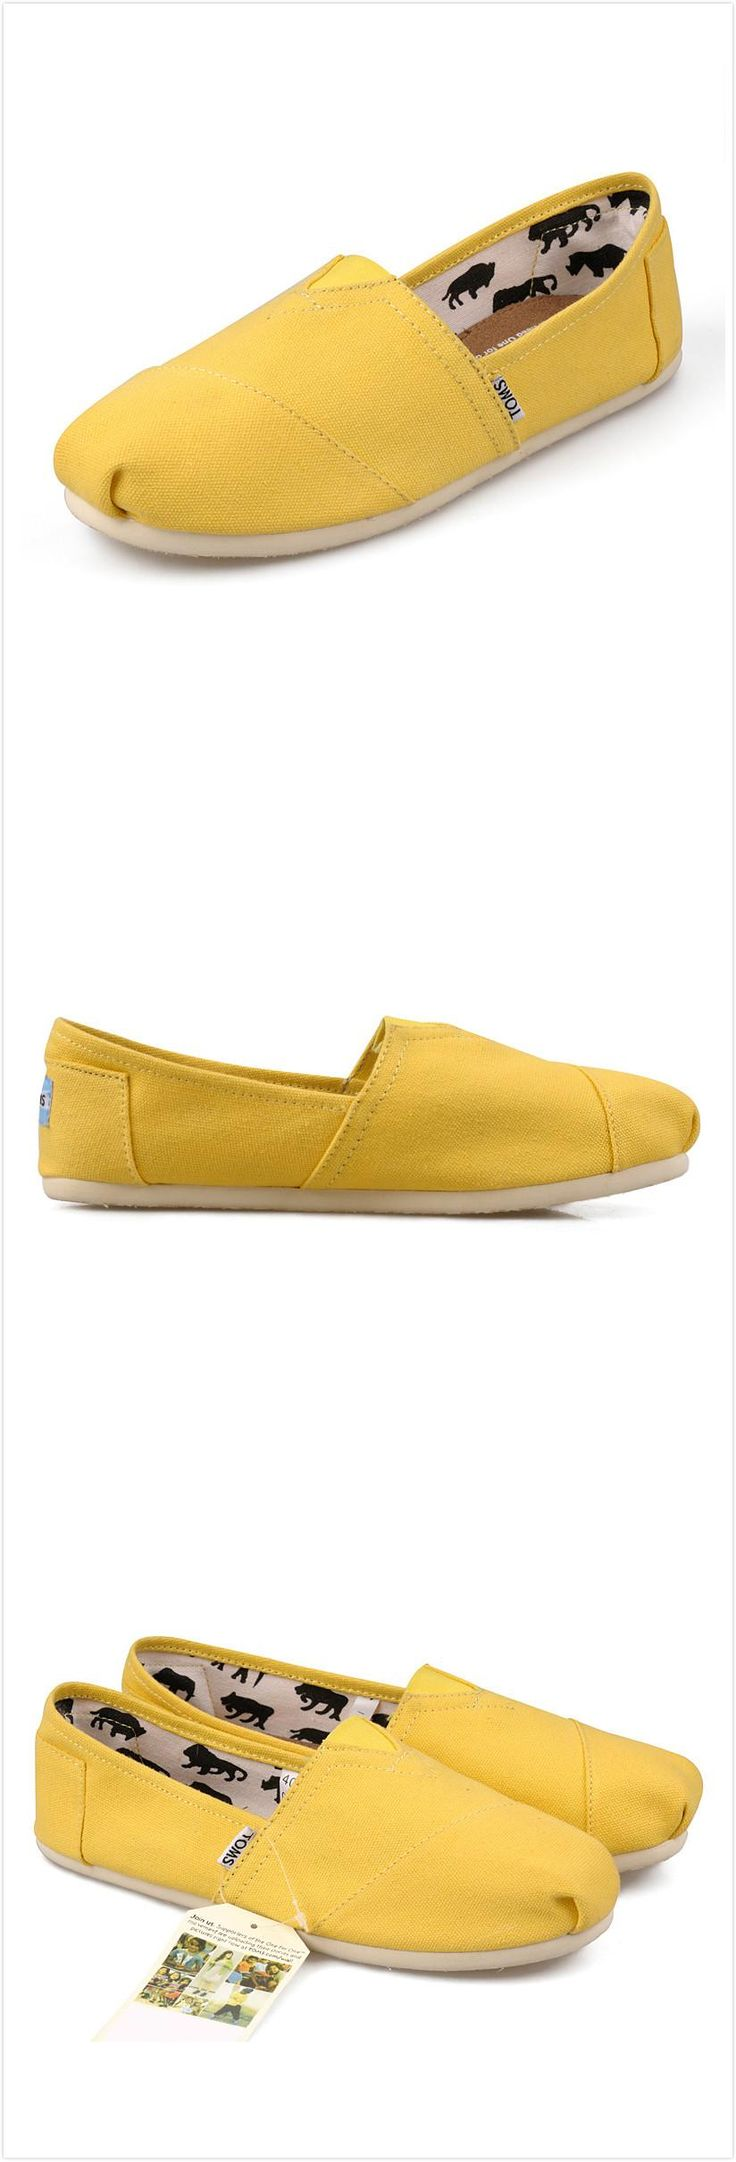 super cheap, TOMS in any style you want. check it out!